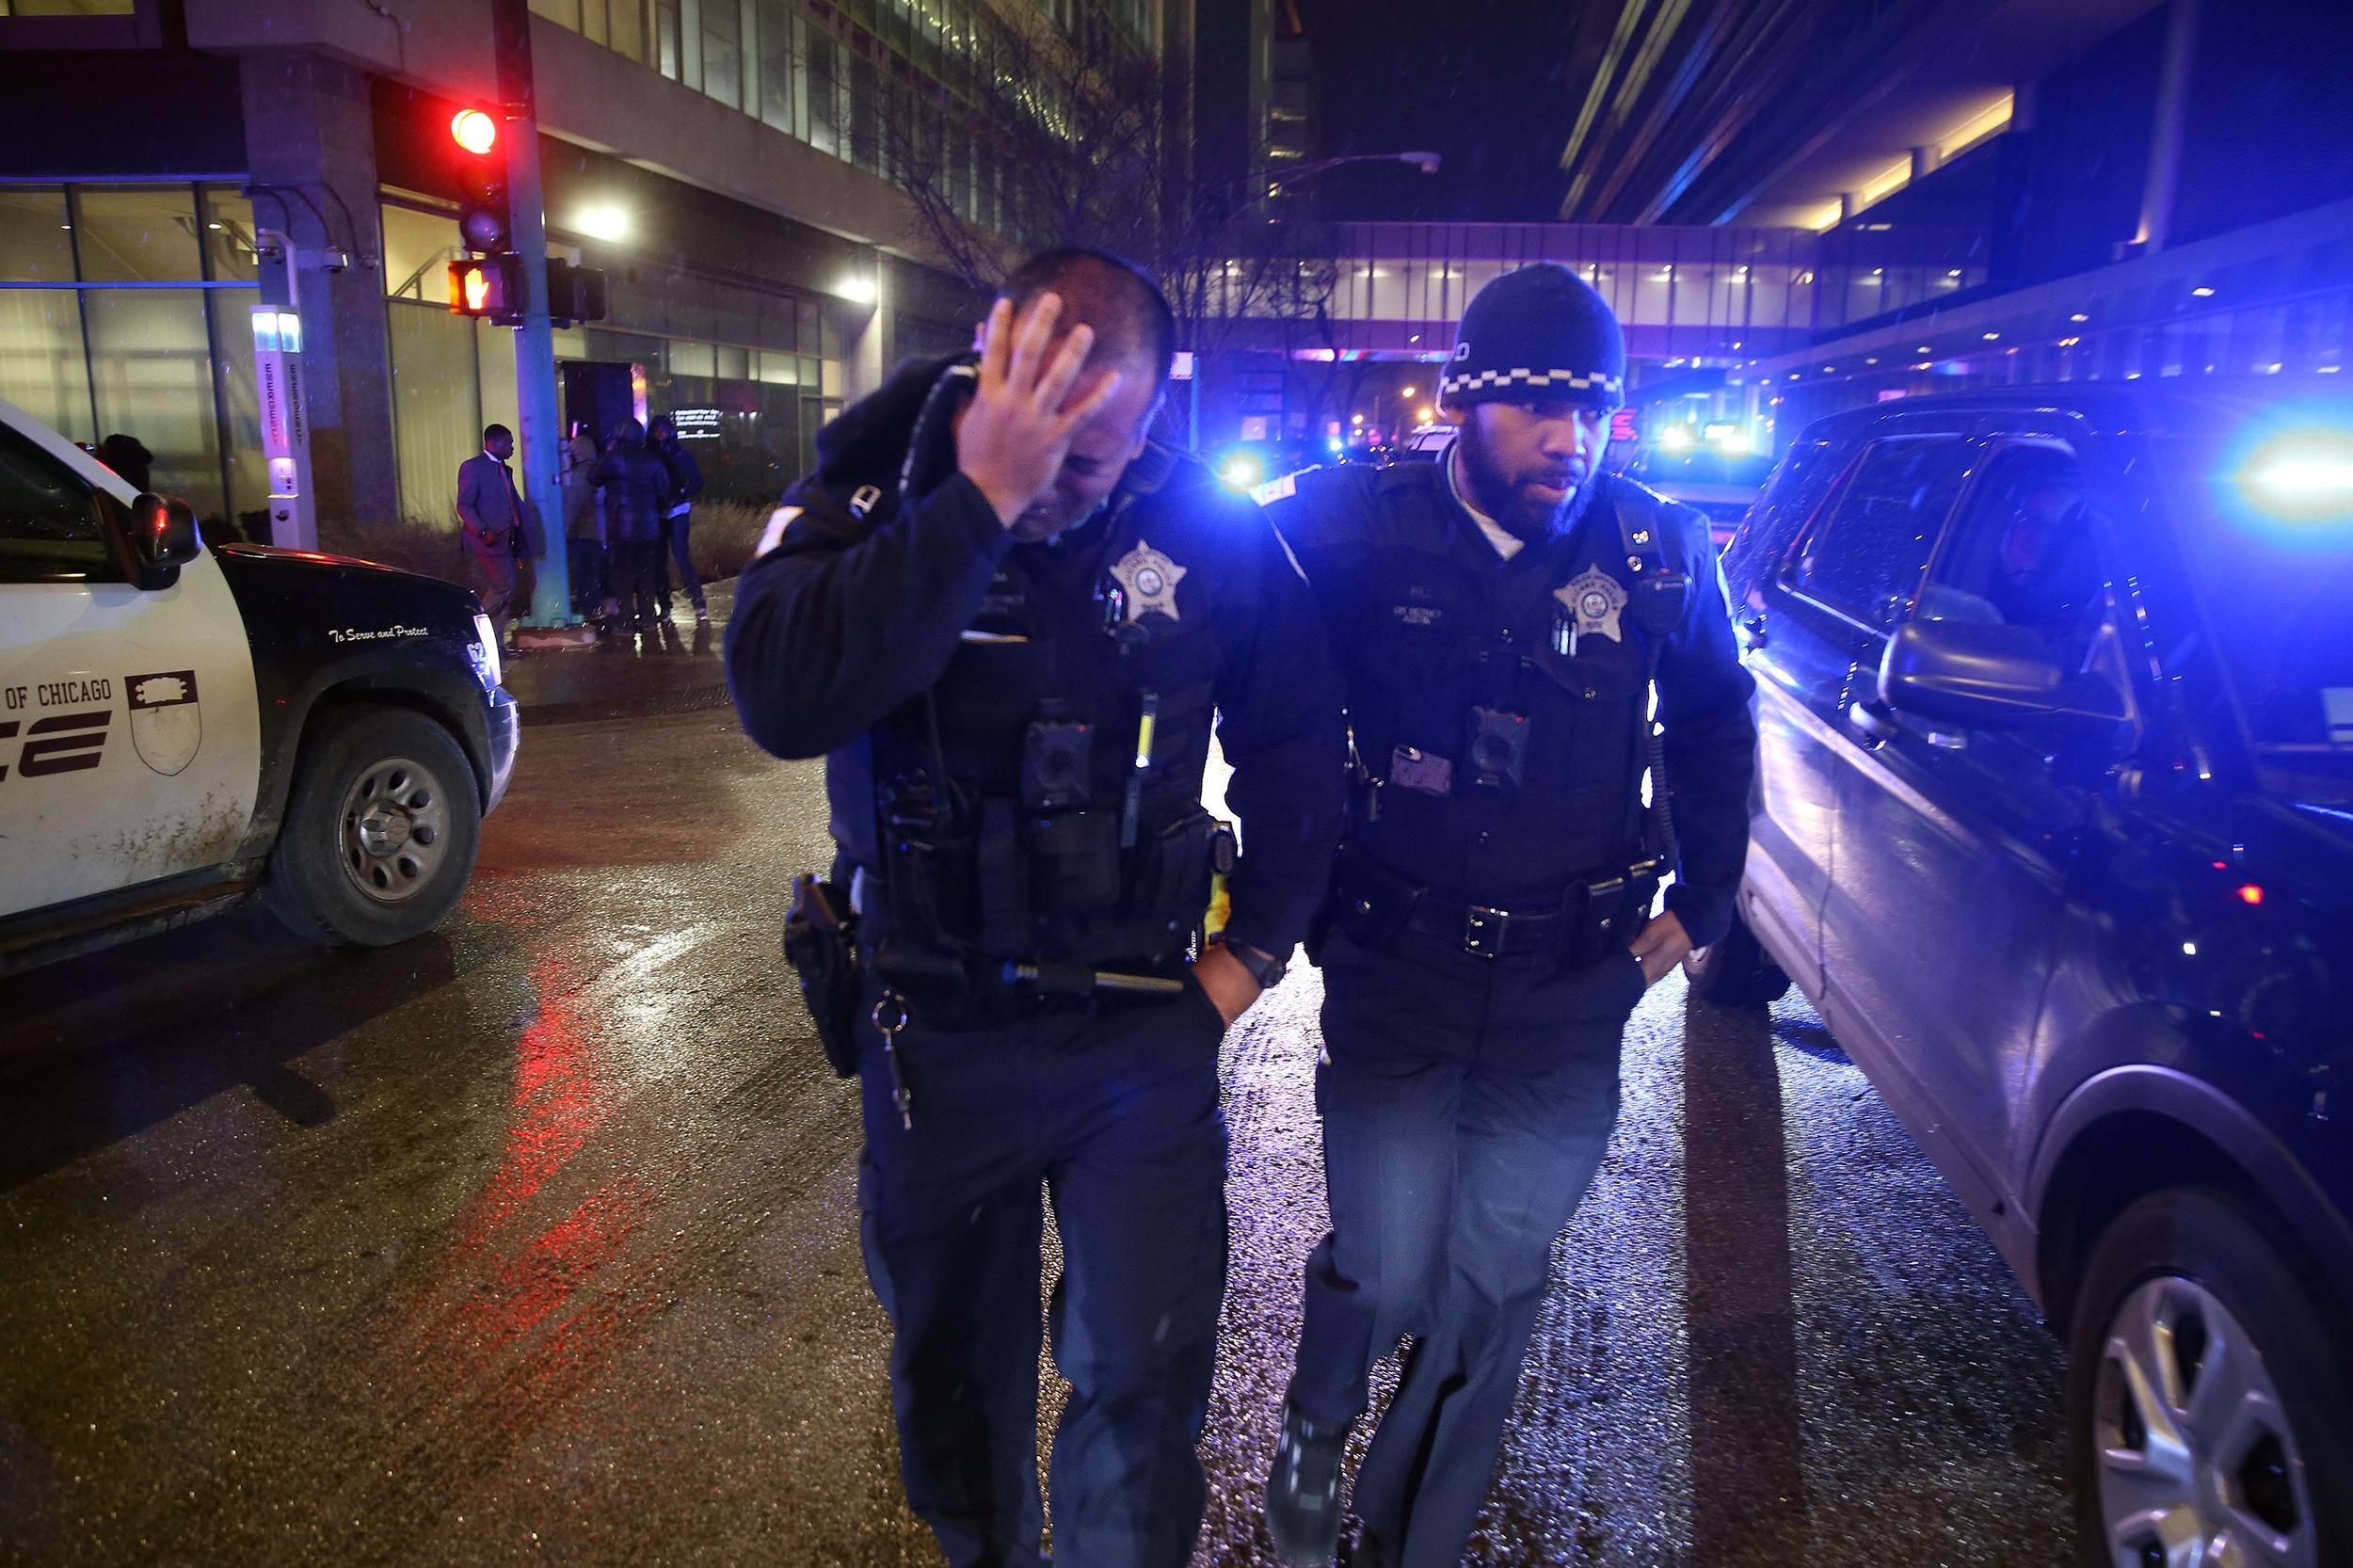 Chicago police comfort one another as they leave the University of Chicago Medical Center Monday, Nov. 19, 2018 to join a procession accompanying an ambulance bearing the body of Officer Samuel Jimenez, who was shot and killed at a separate South Side hospital earlier Monday. (Chris Walker/Chicago Tribune/TNS via Getty Images)